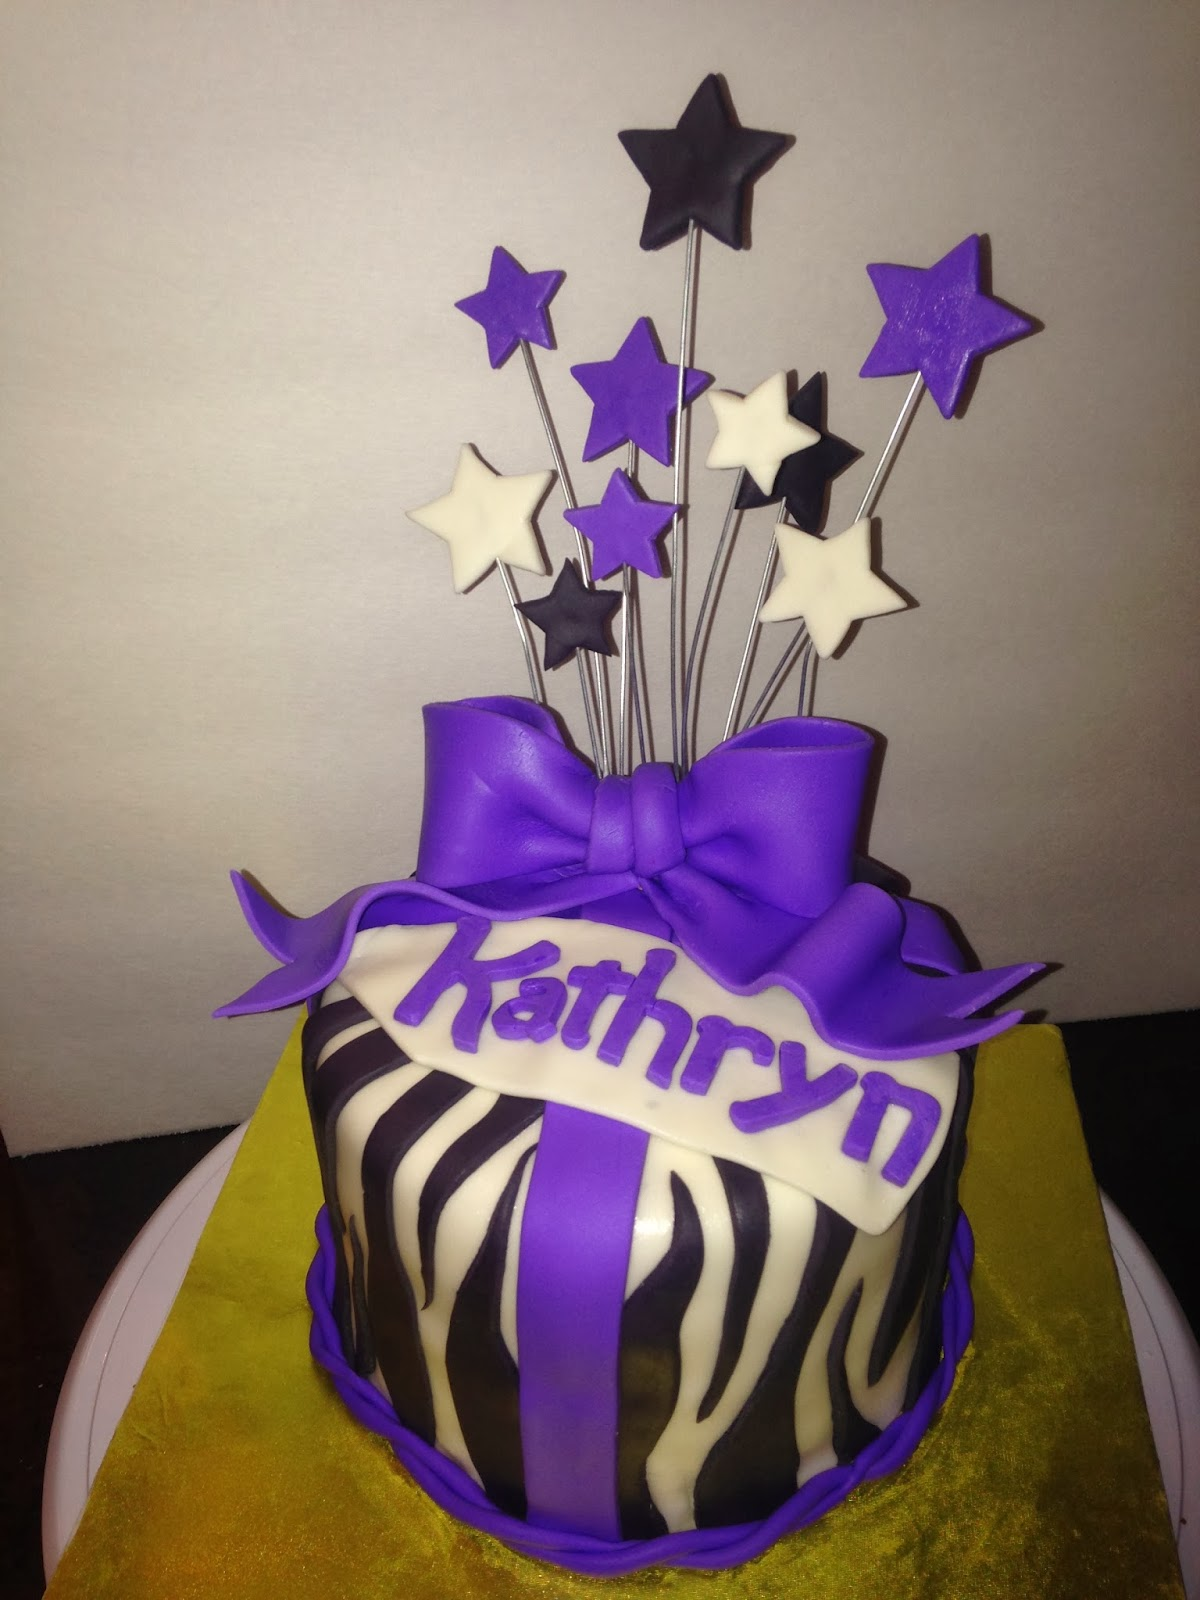 Joyce Gourmet Zebra Birthday Cake With A Lavender Ribbon